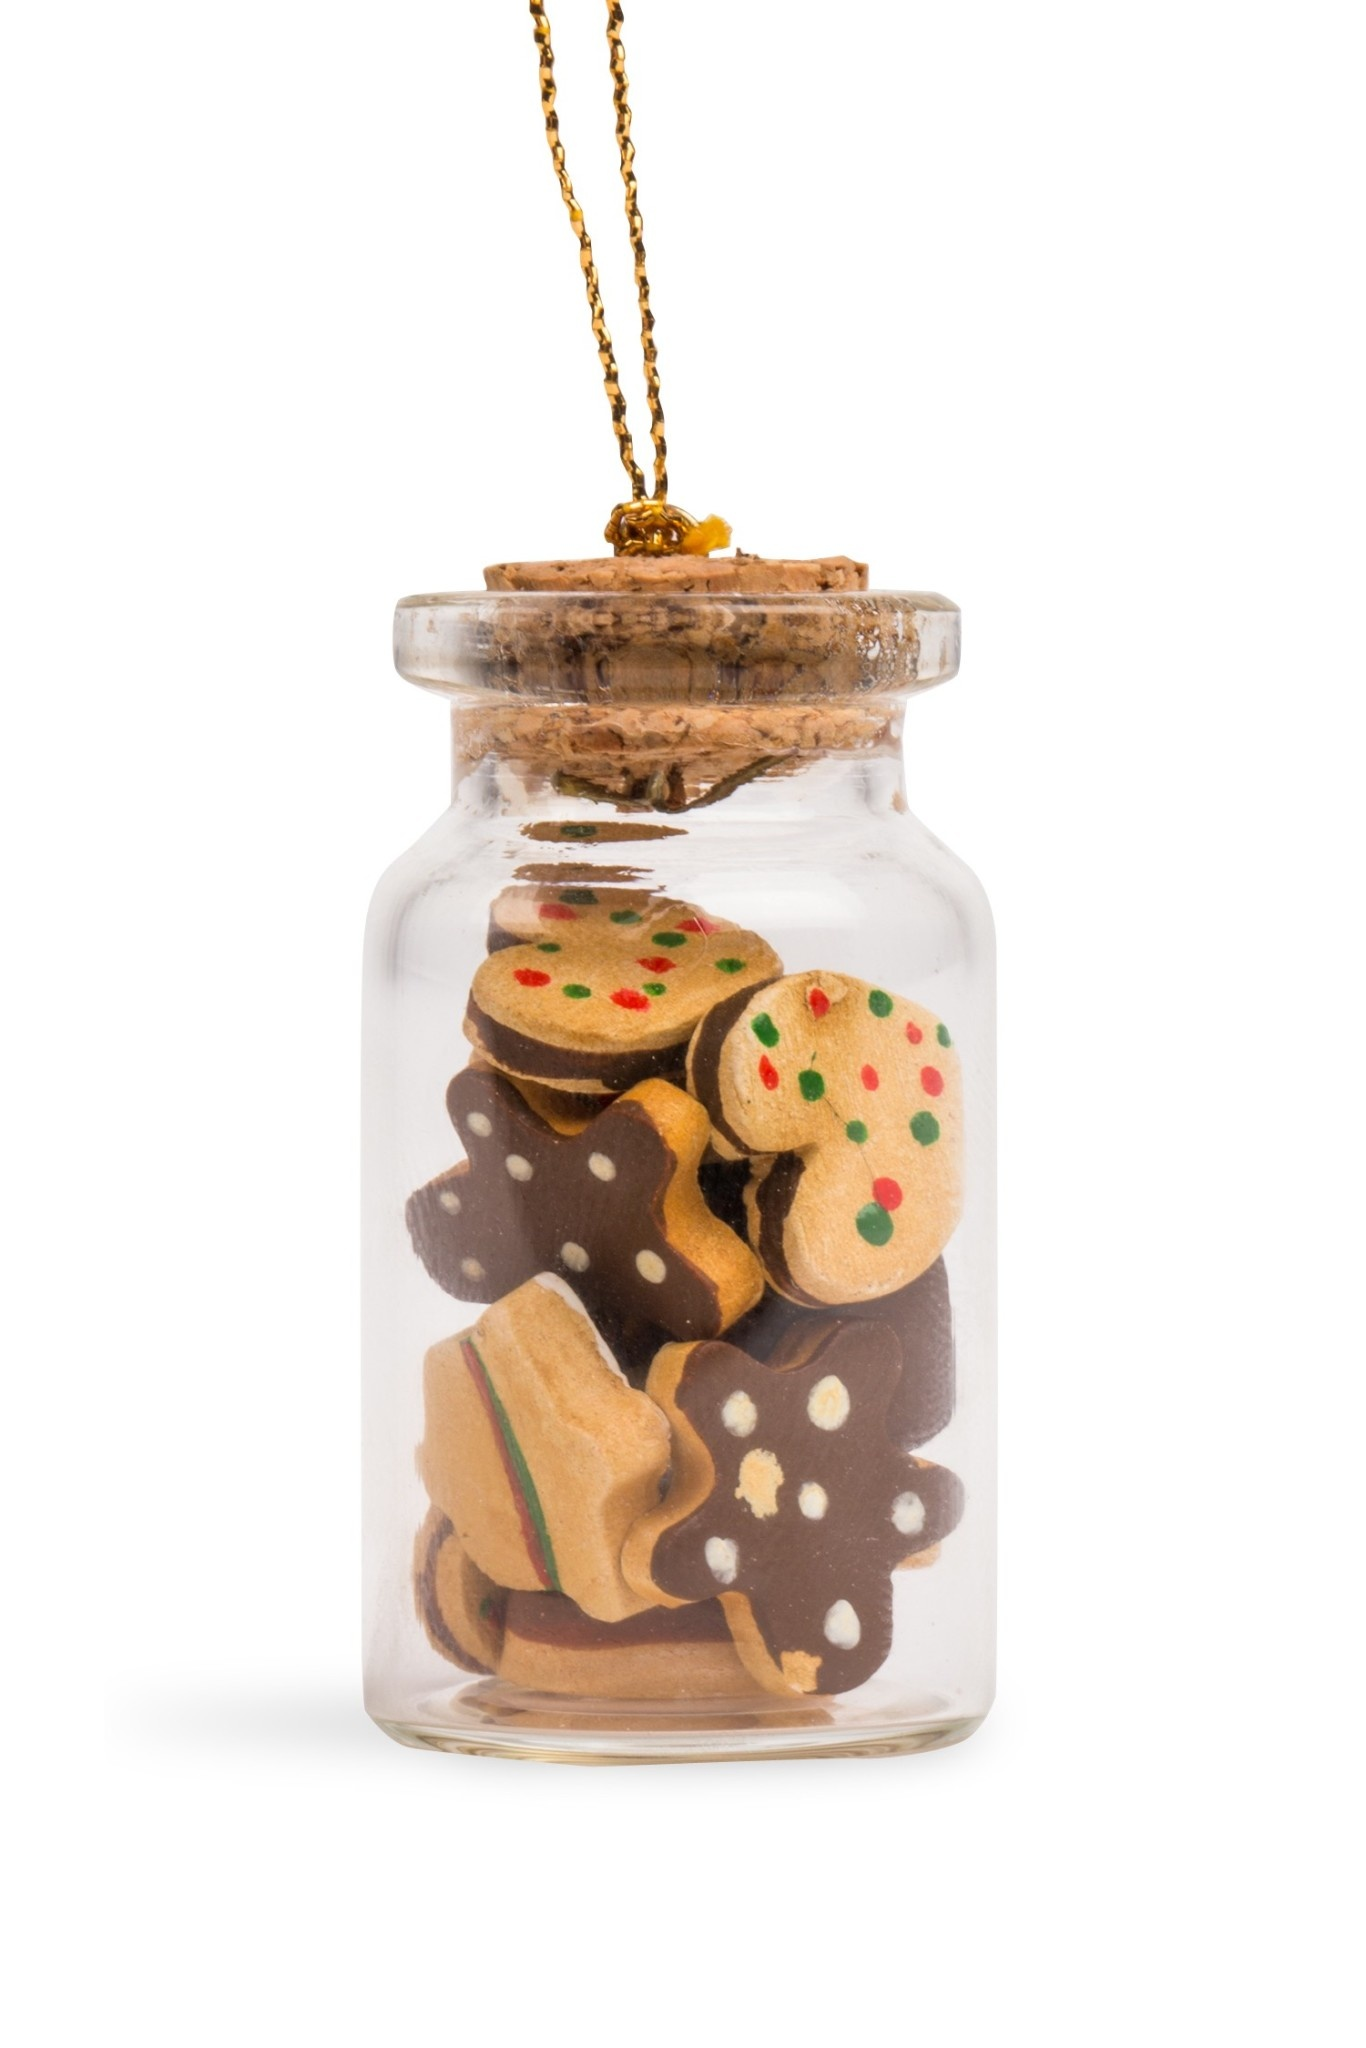 Ornament - Gingerbread Cookies in a Bottle